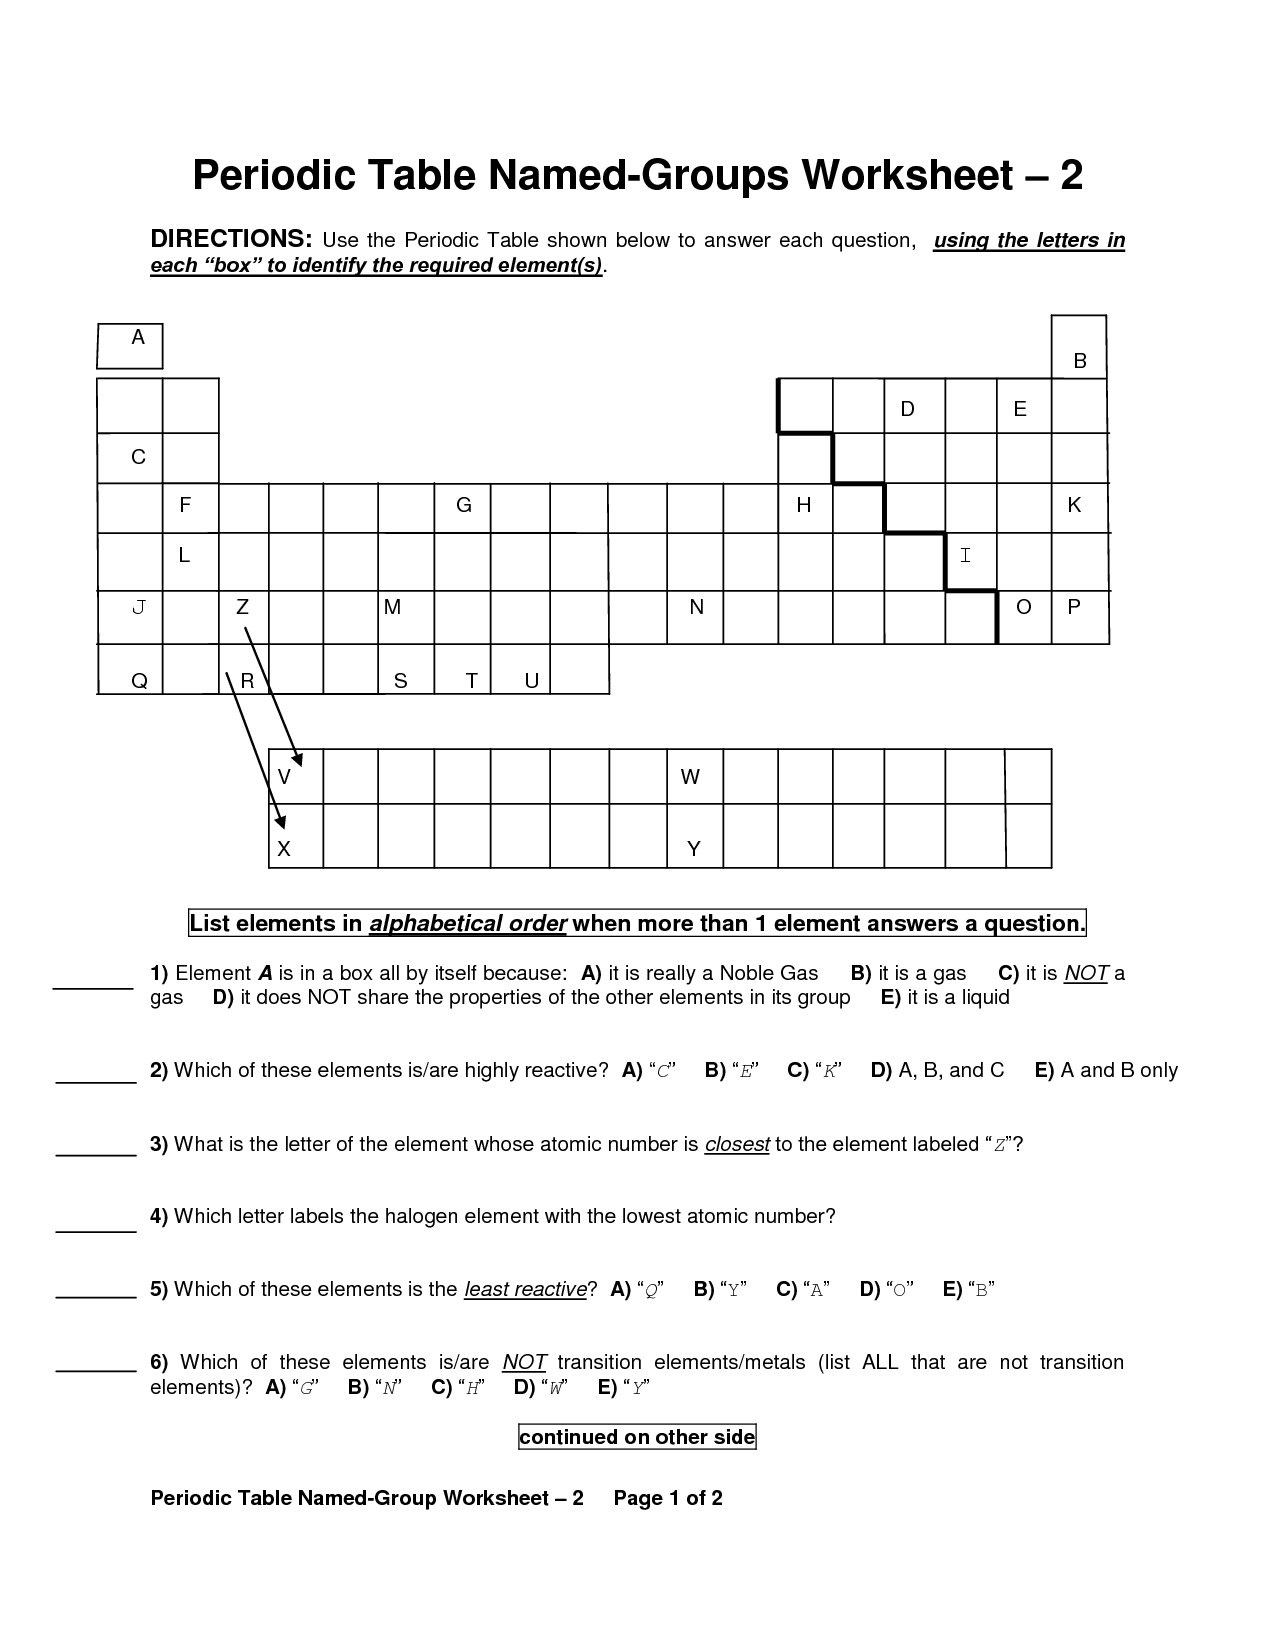 Forensic Worksheets For High School Key   Printable Worksheets and  Activities for Teachers [ 1650 x 1275 Pixel ]